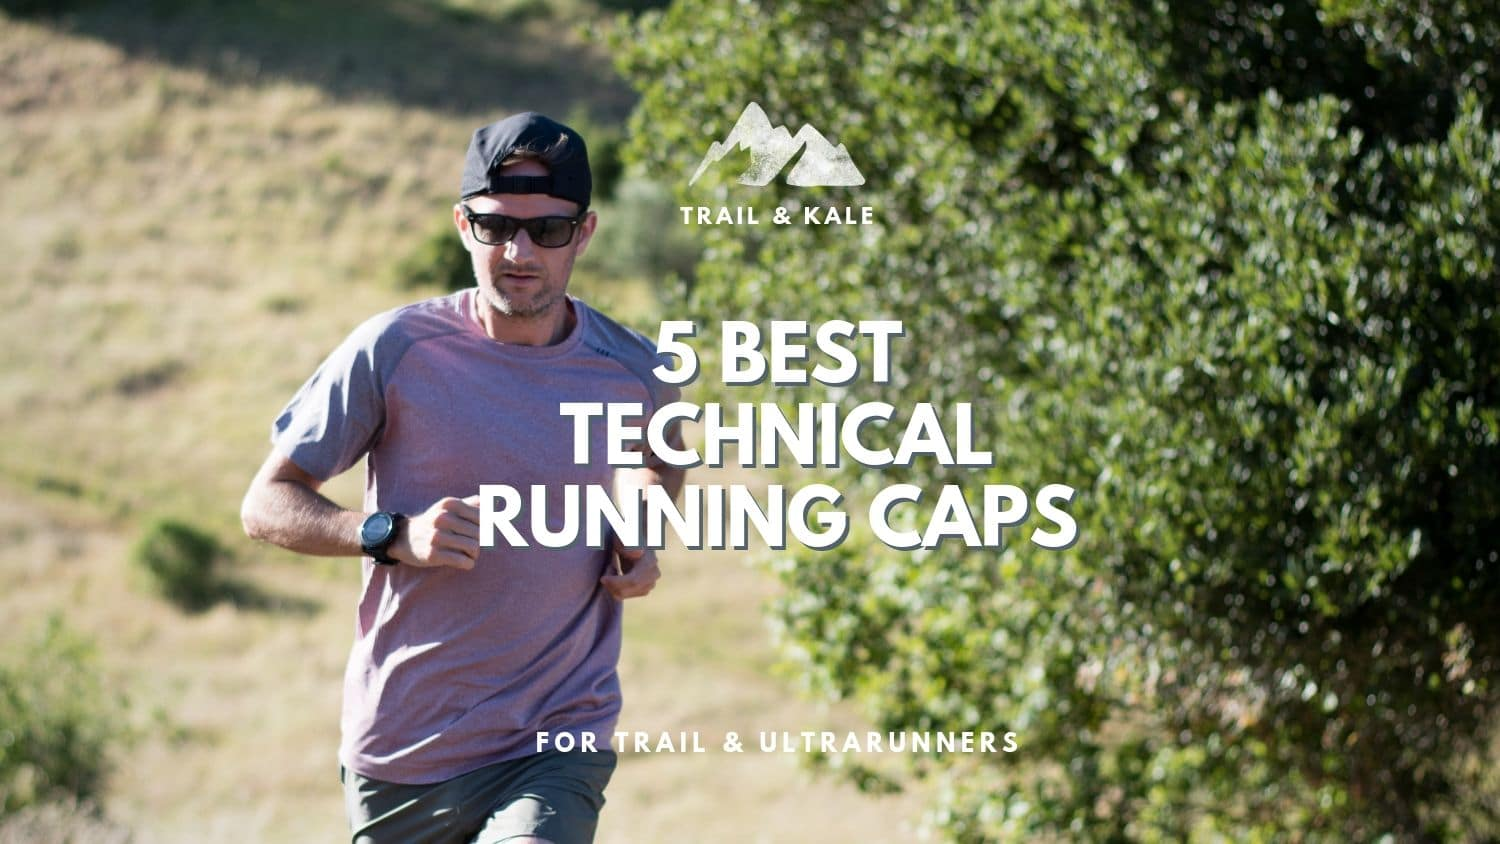 best running hats technical caps for runners trail and kale